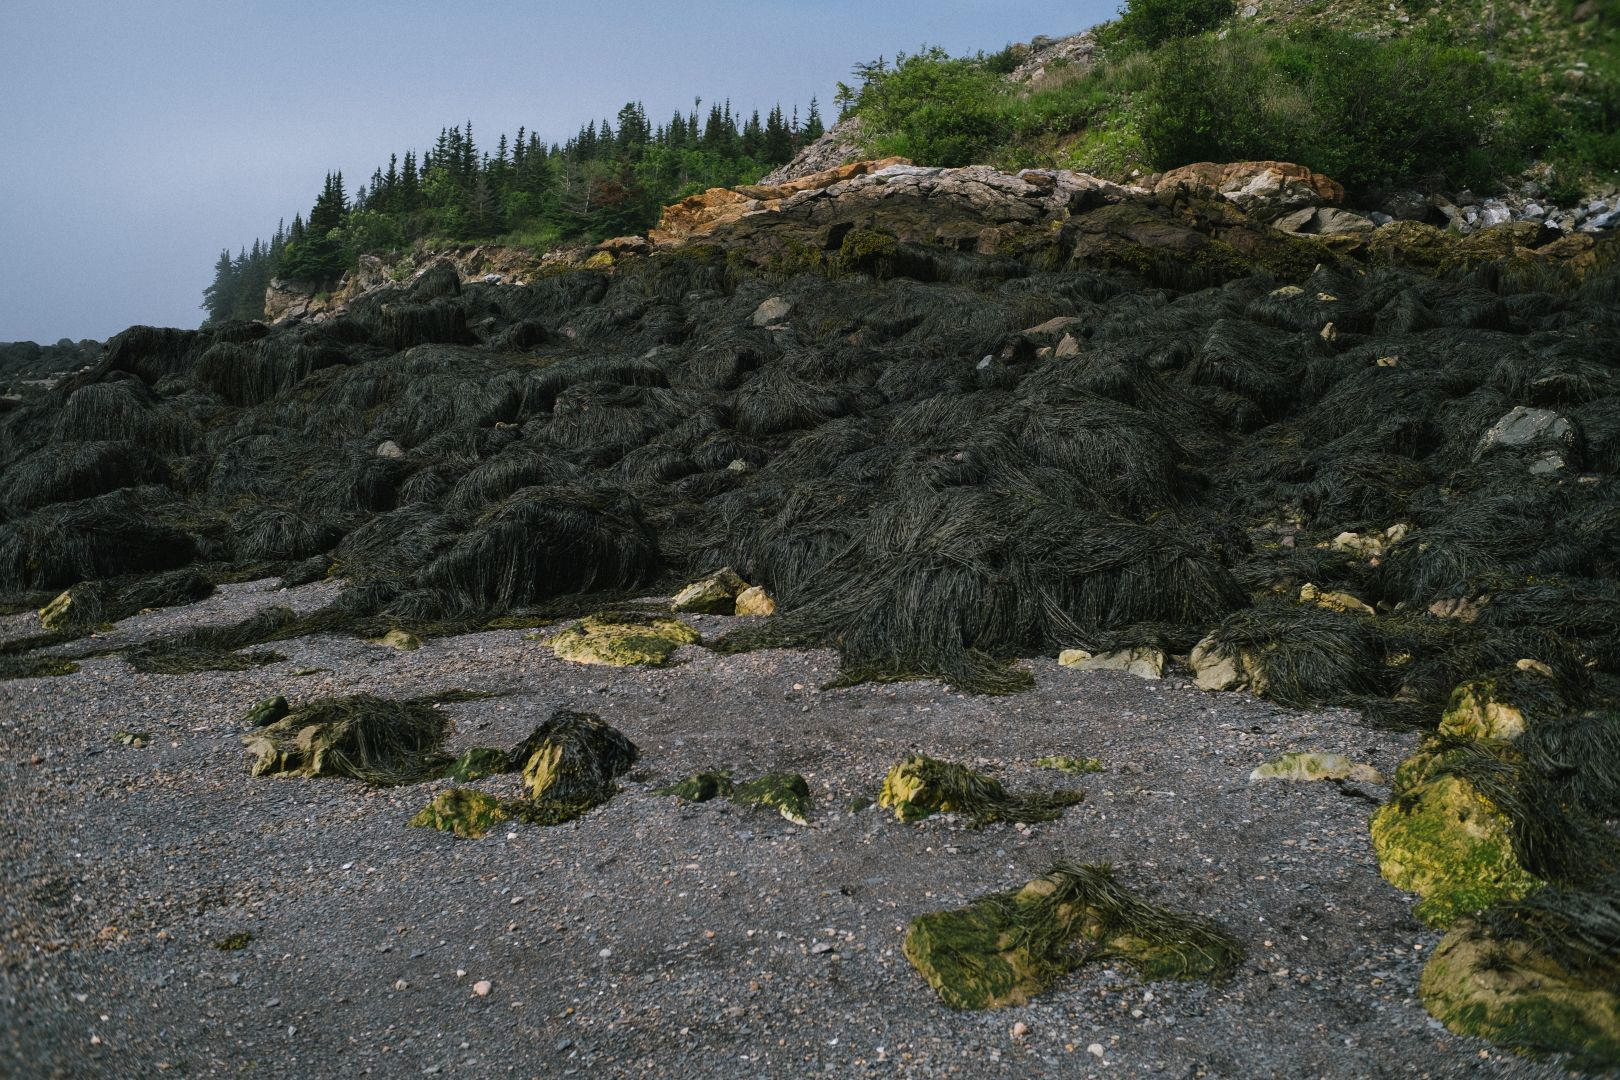 A photo depicting Seaweed Covering Rocks at Black Beach